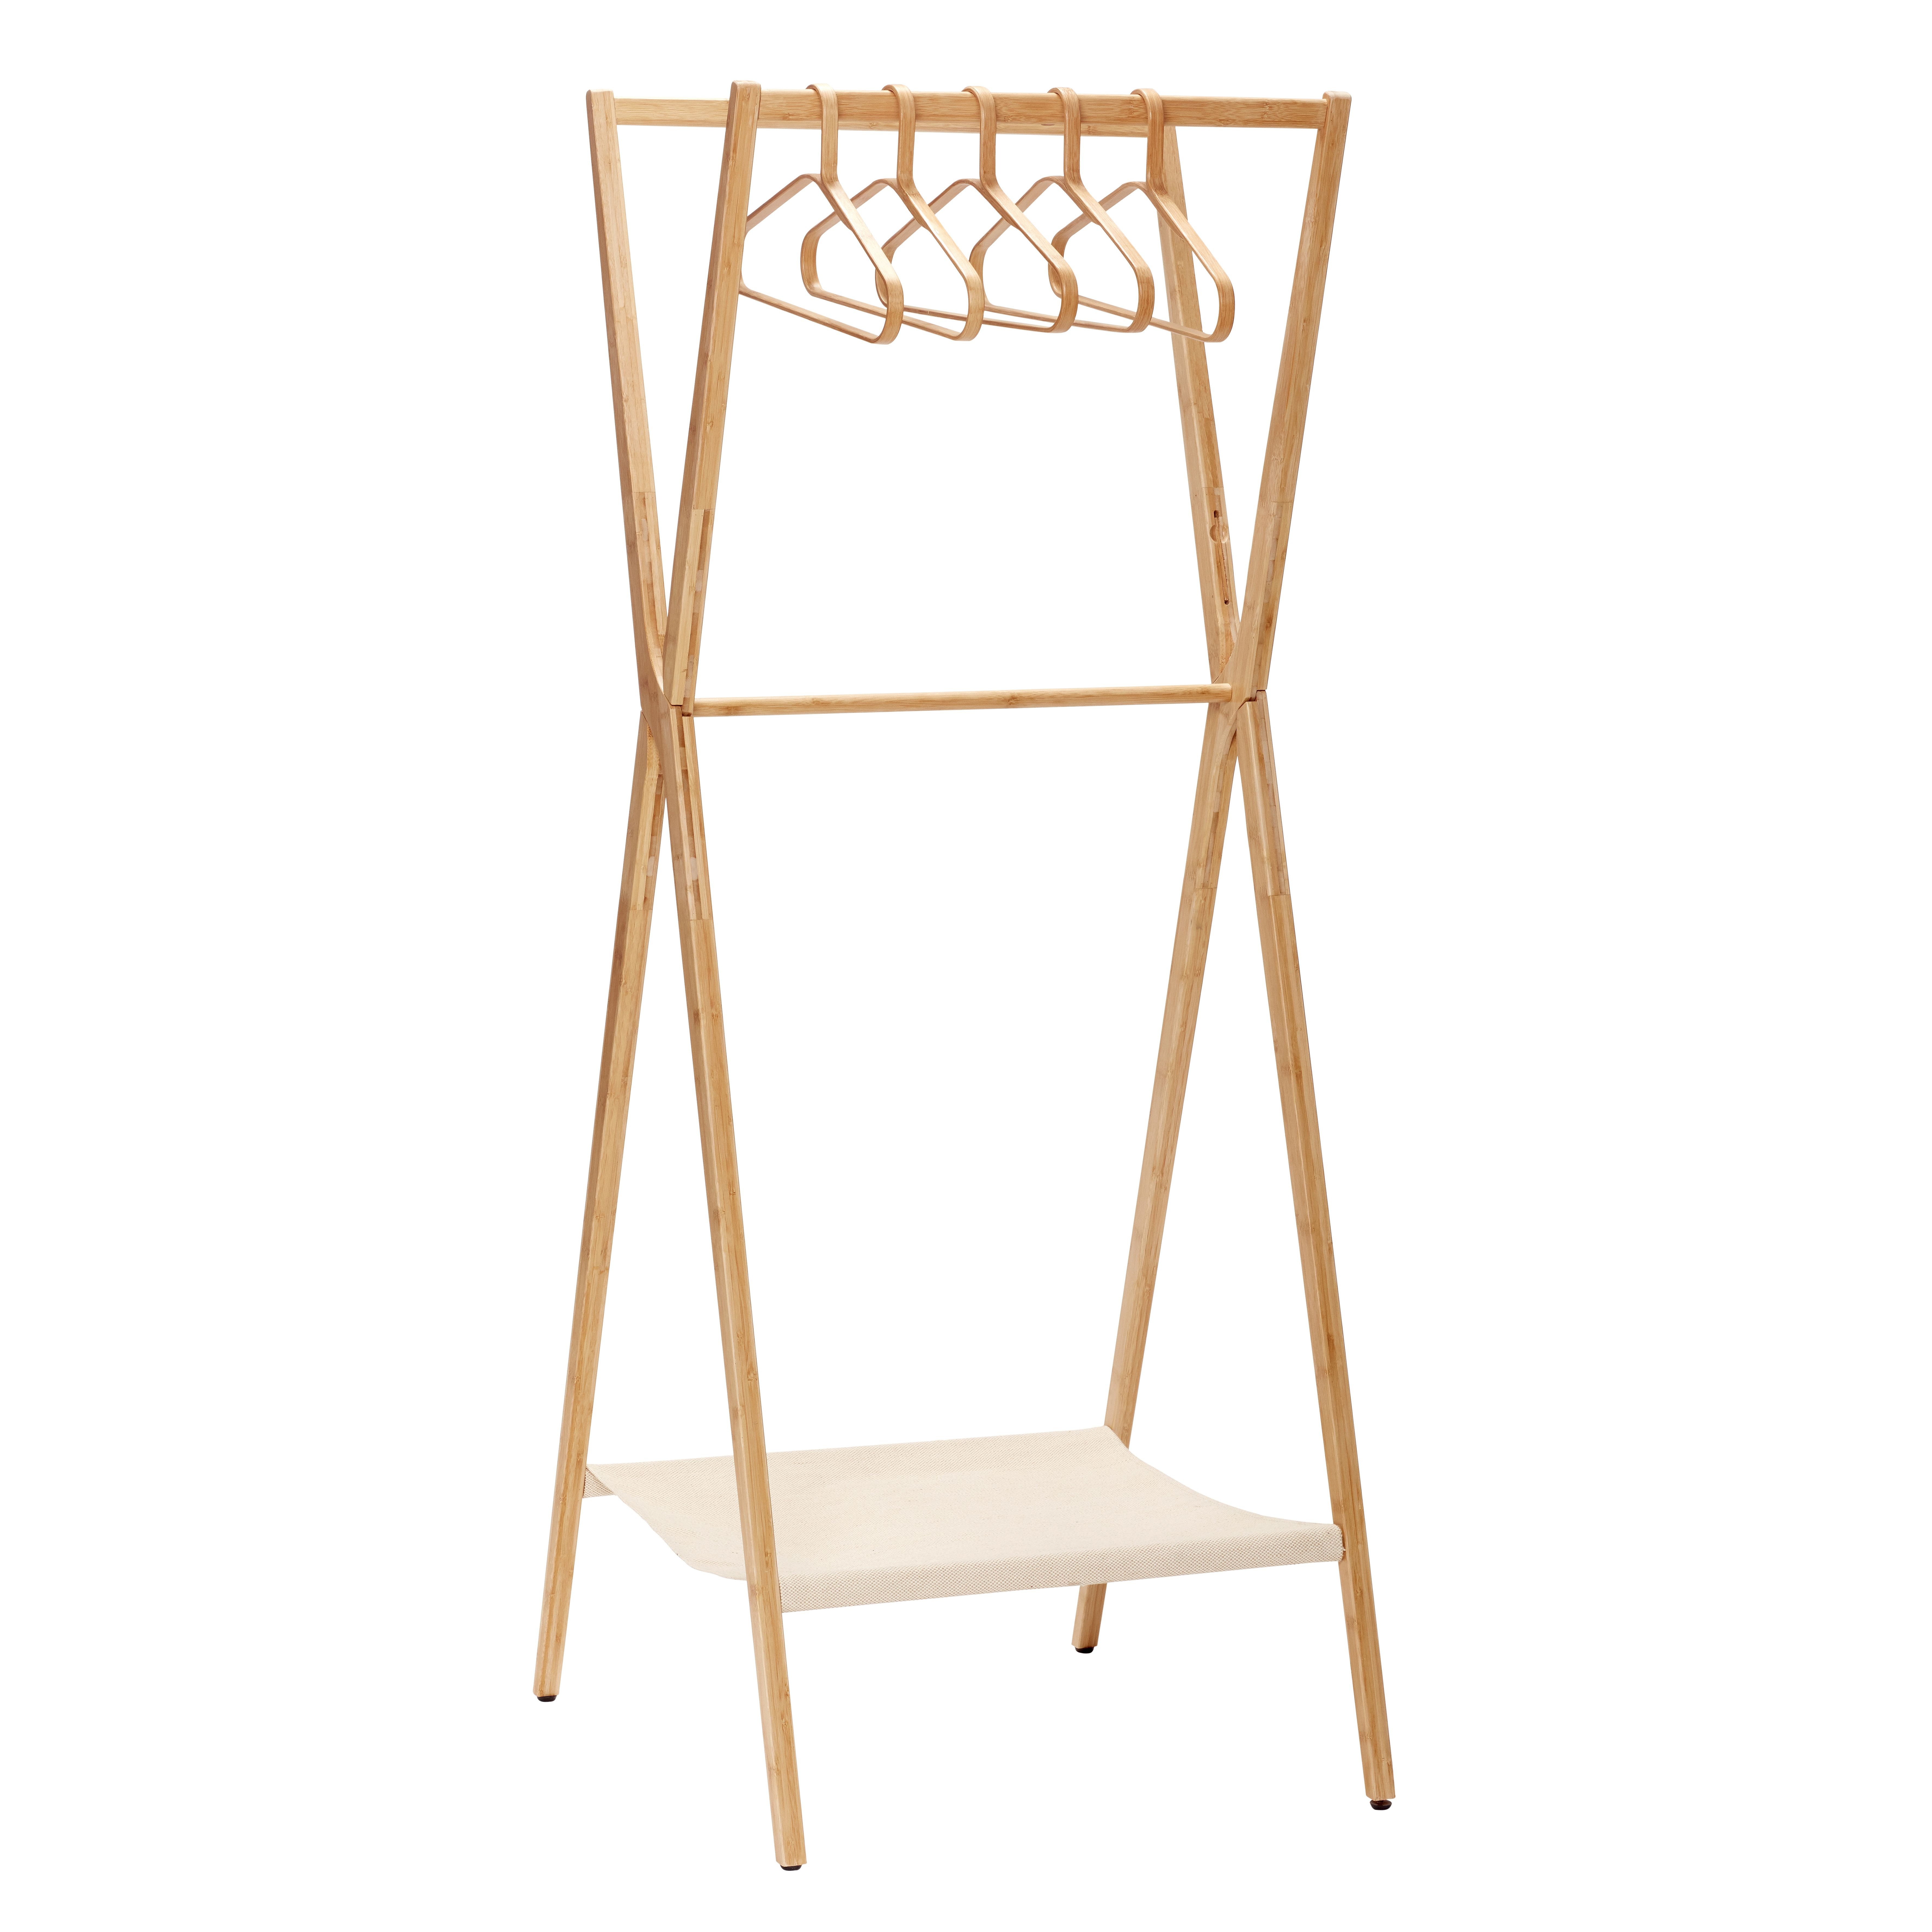 Bamboo Clothing Rack With Hangers Item Number 240401  Designed